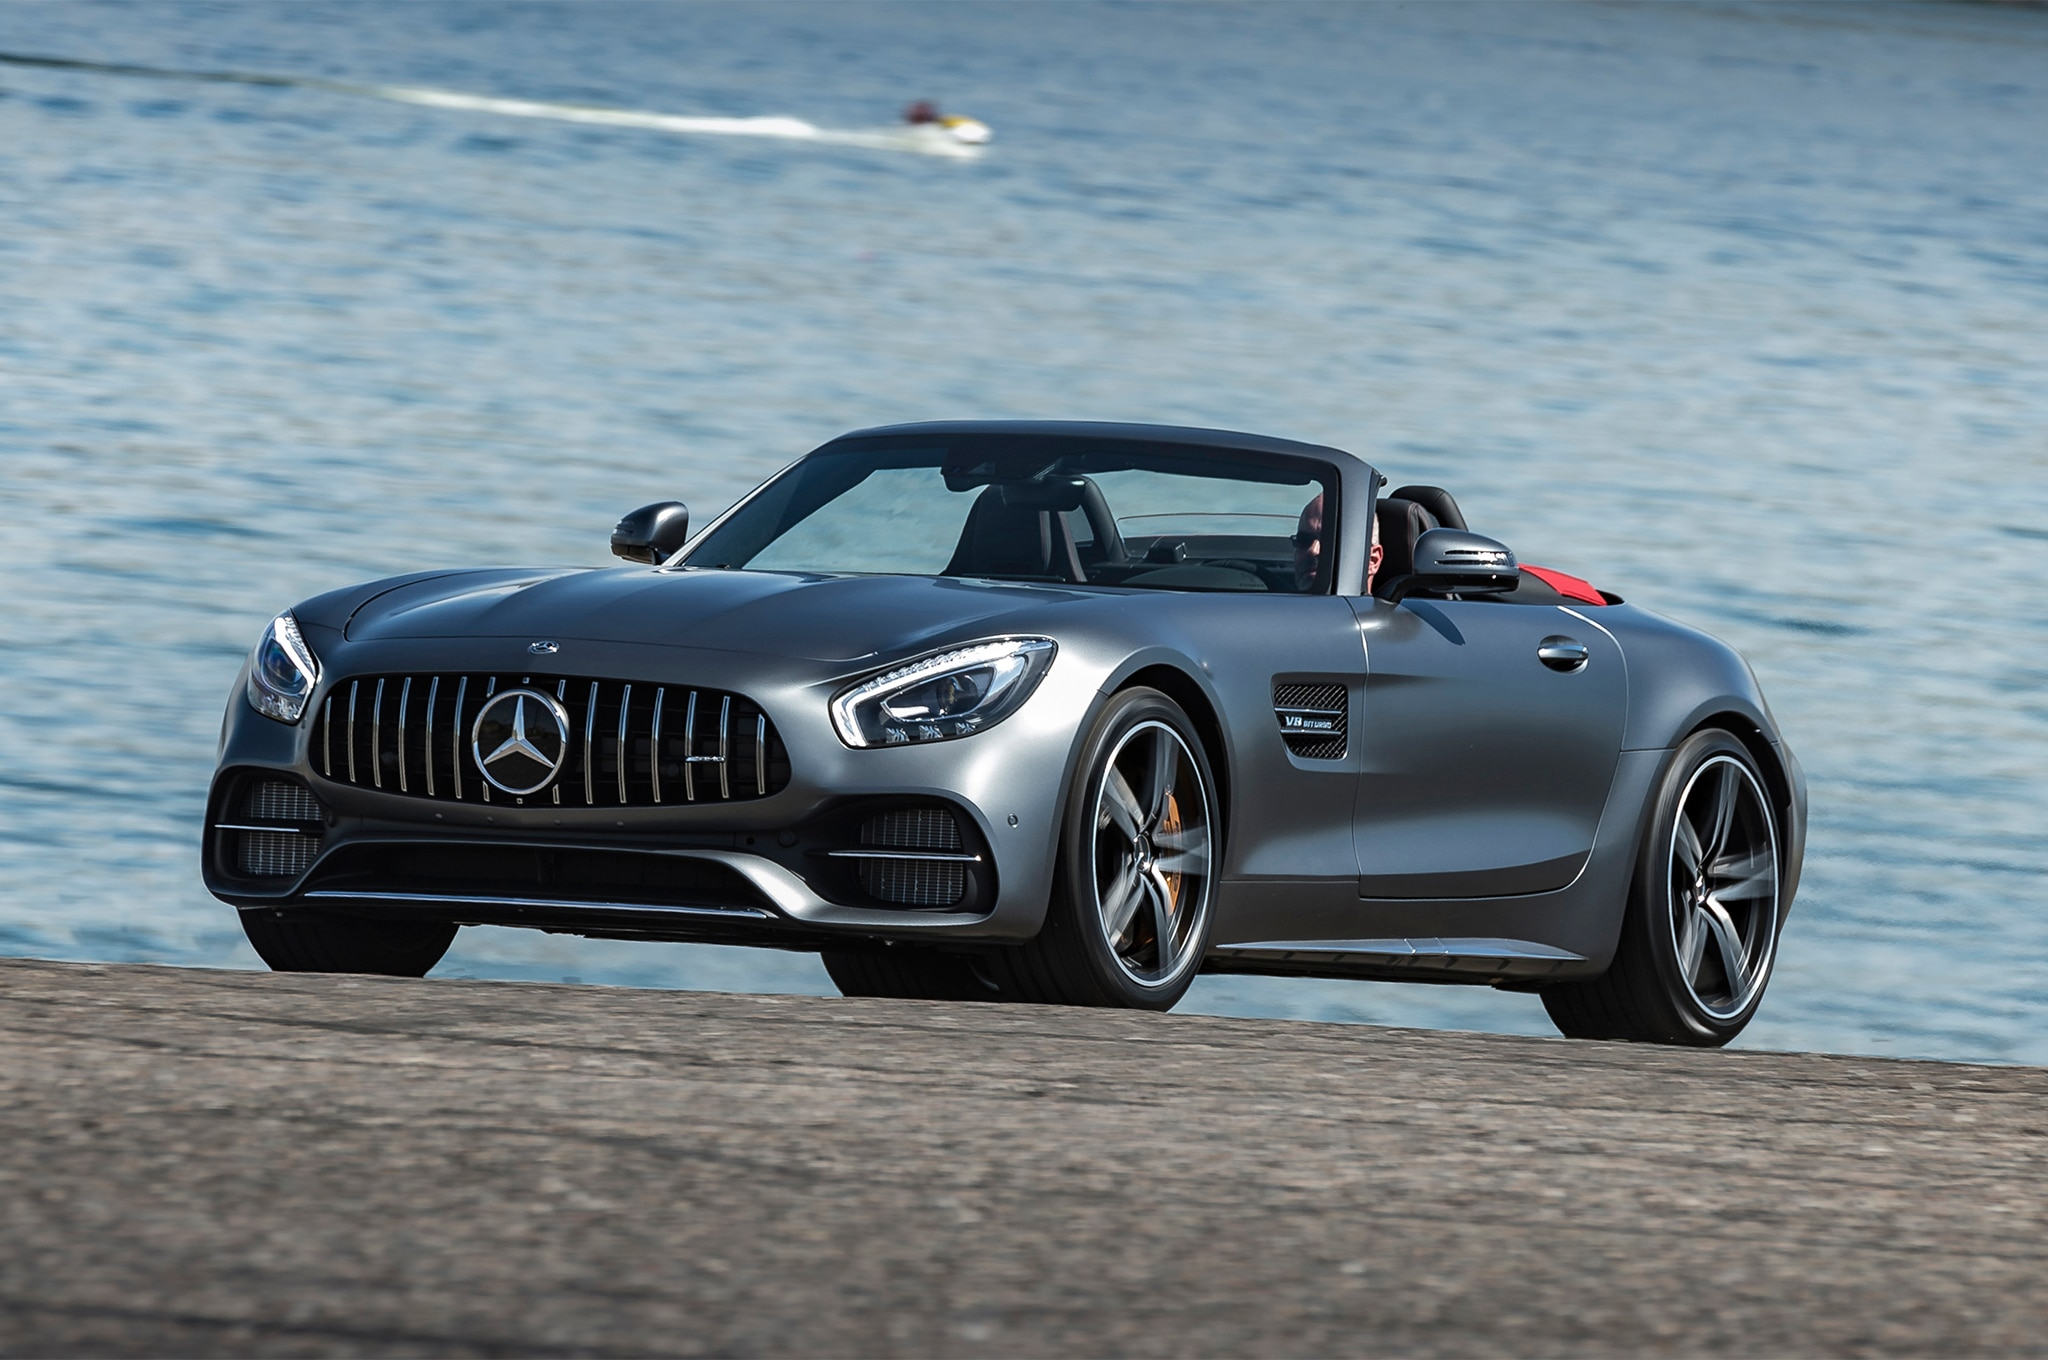 2018 mercedes amg gt and gt c roadster first drive review